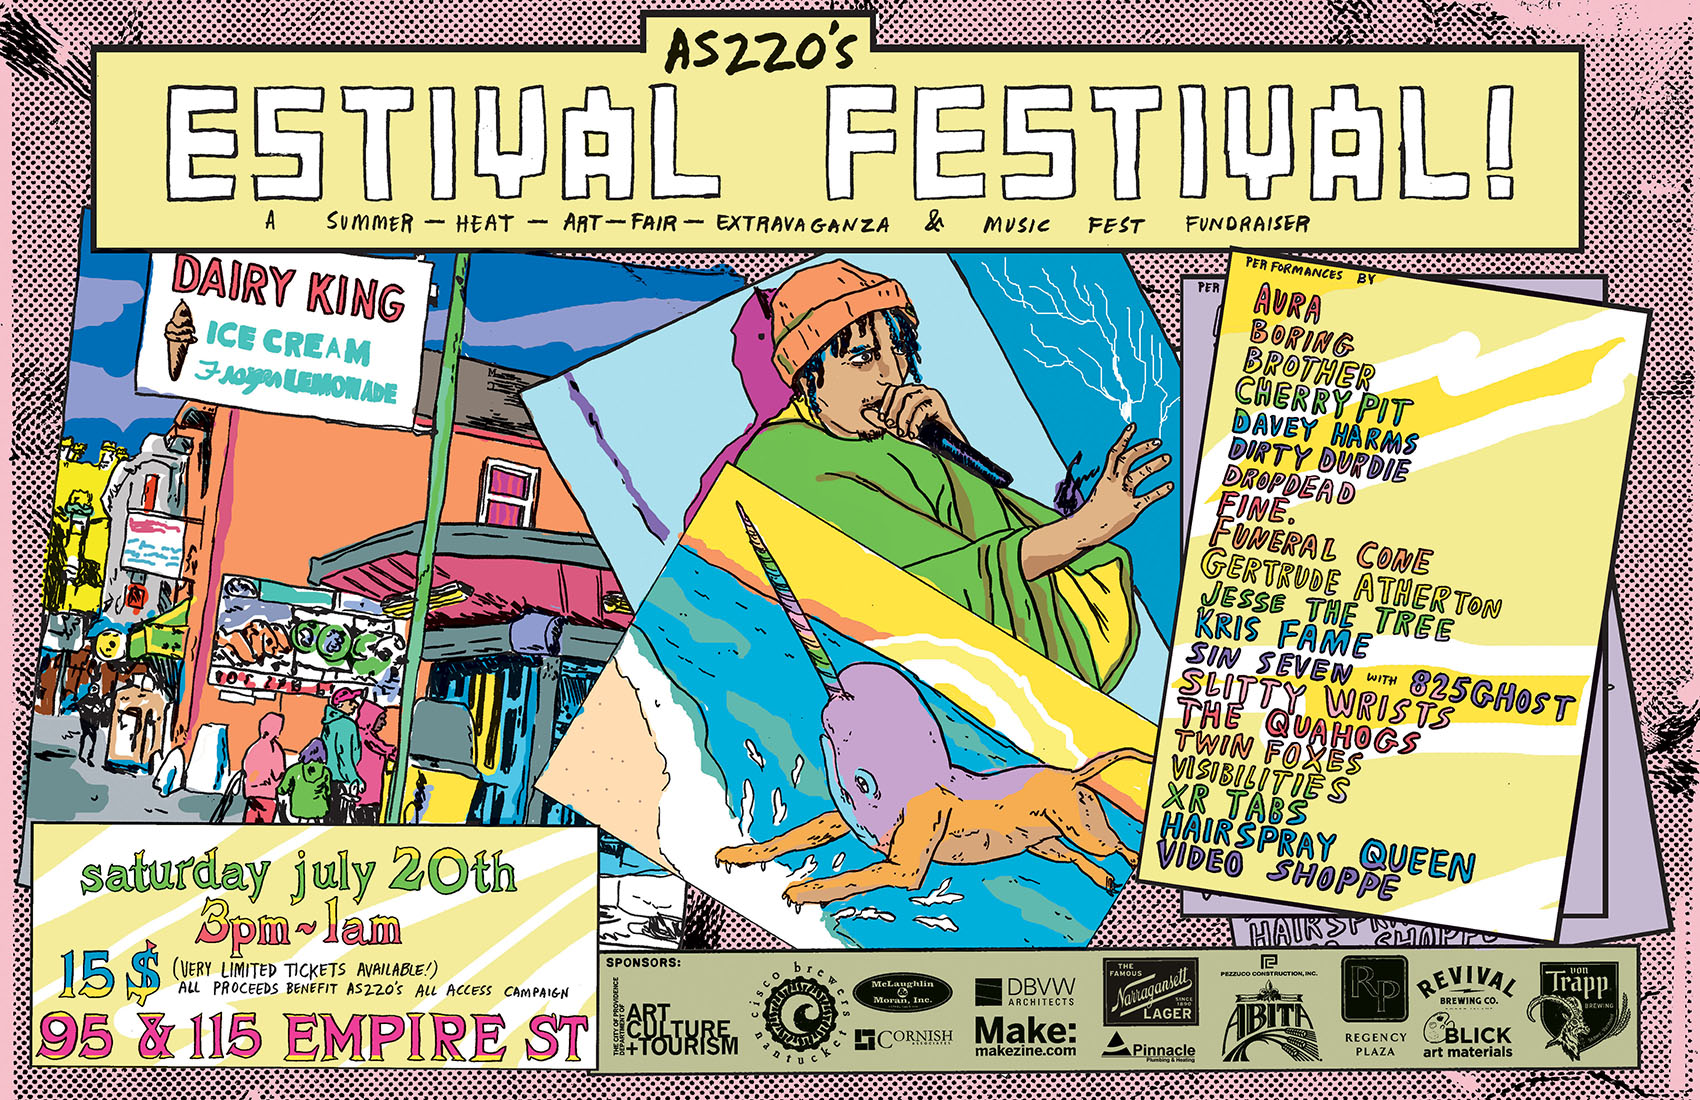 AS220's Estival Festival! @ 115 and 95 Empire Street